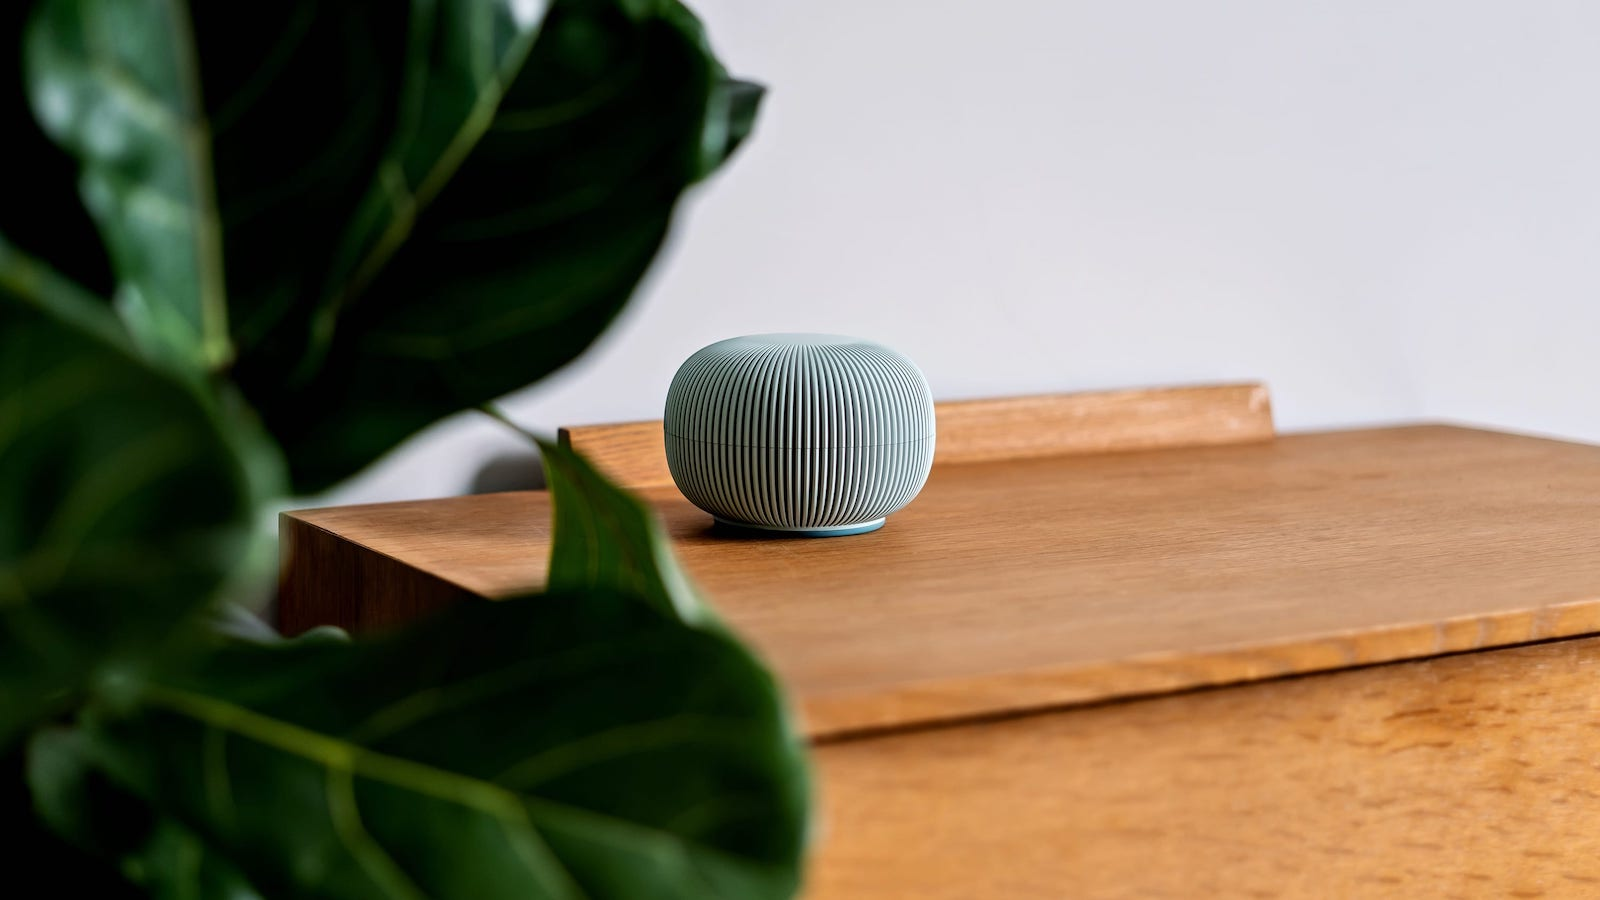 Blond Zobi Hedgehog cyber security device is plug-and-play and protects home networks